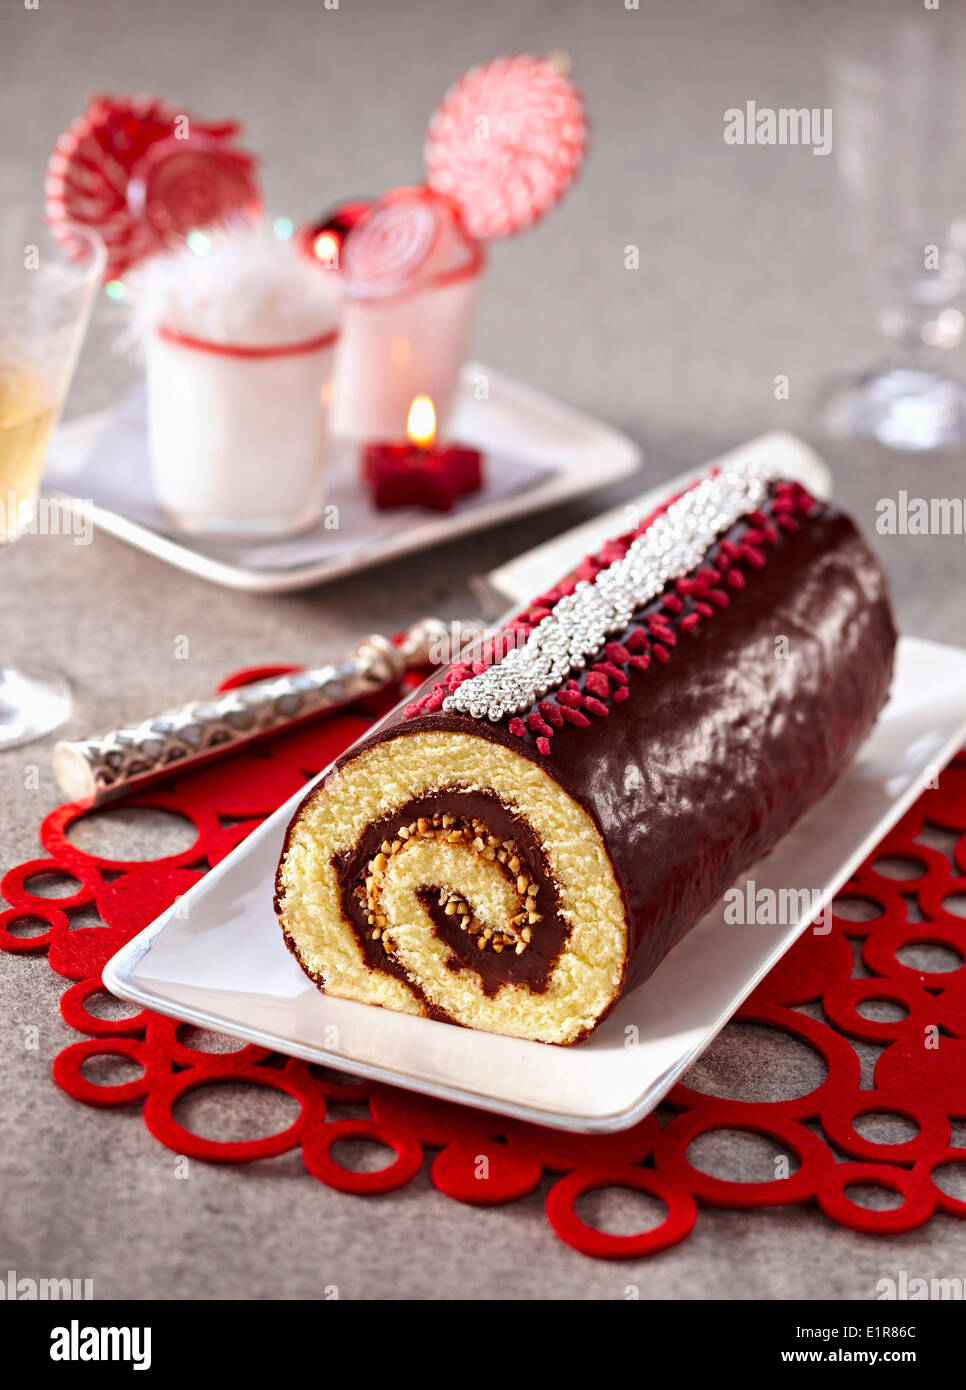 Chocolate and almond rolled log cake - Stock Image